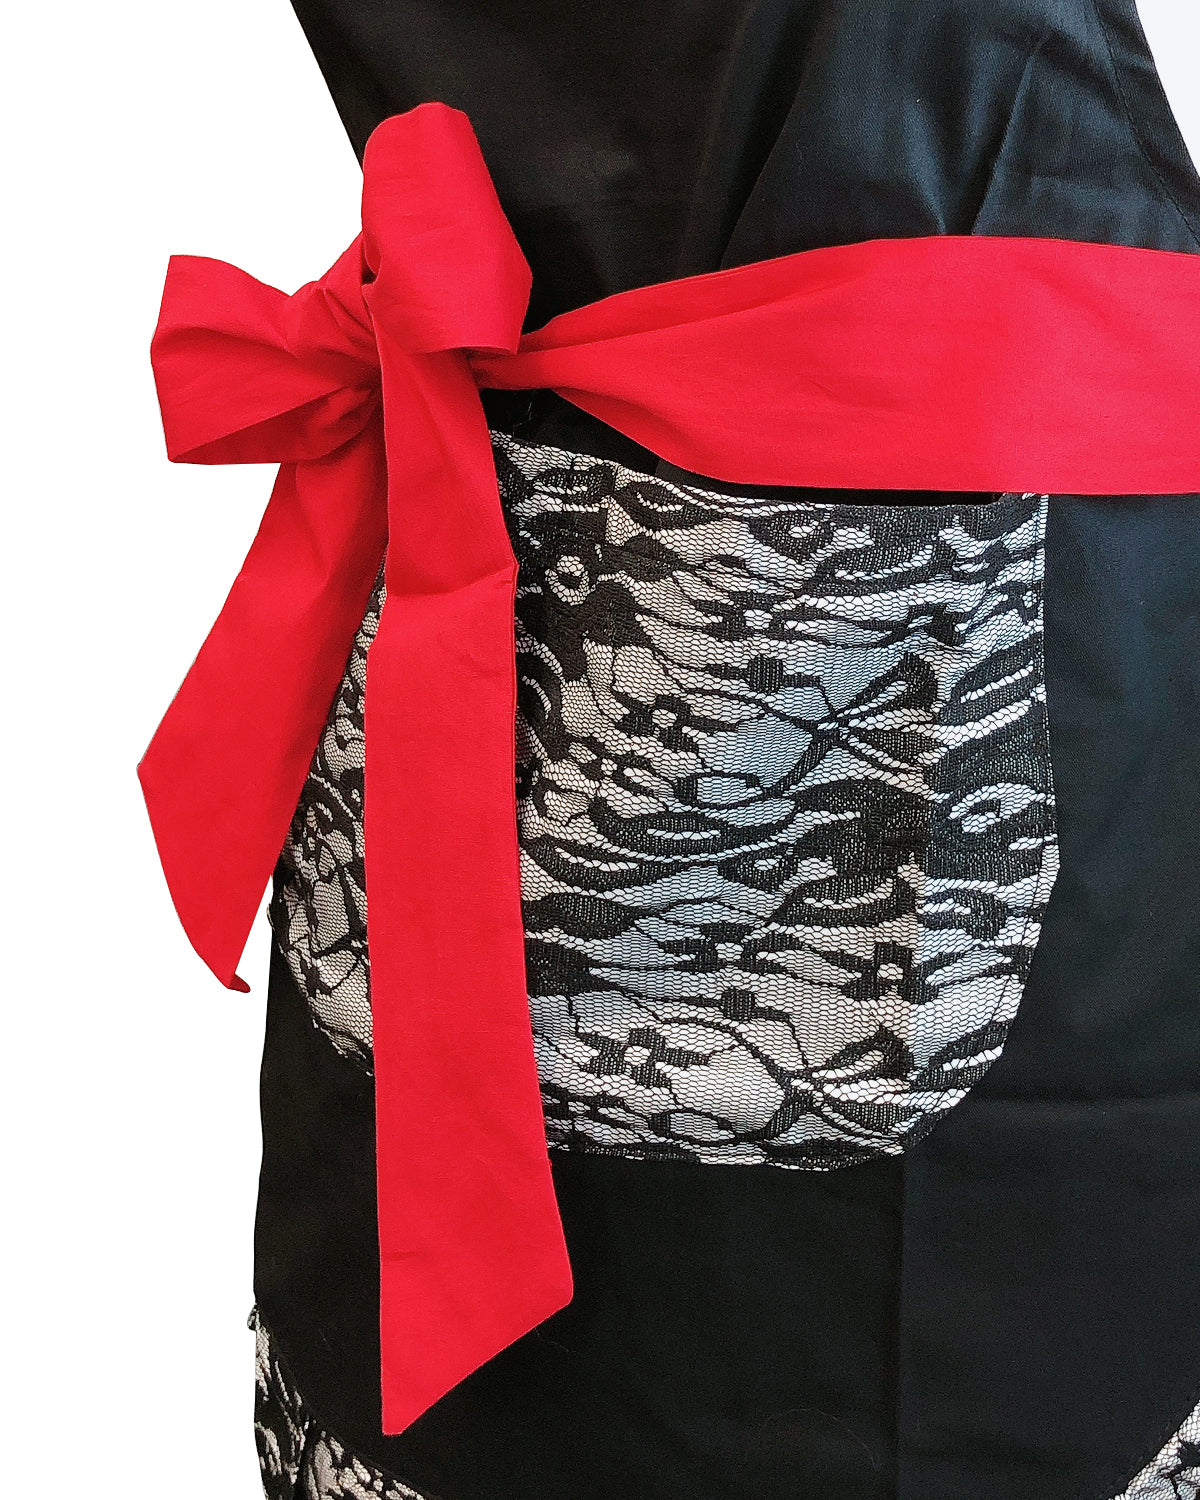 Wrapables Classic Vintage Apron, Stylish Cooking Apron